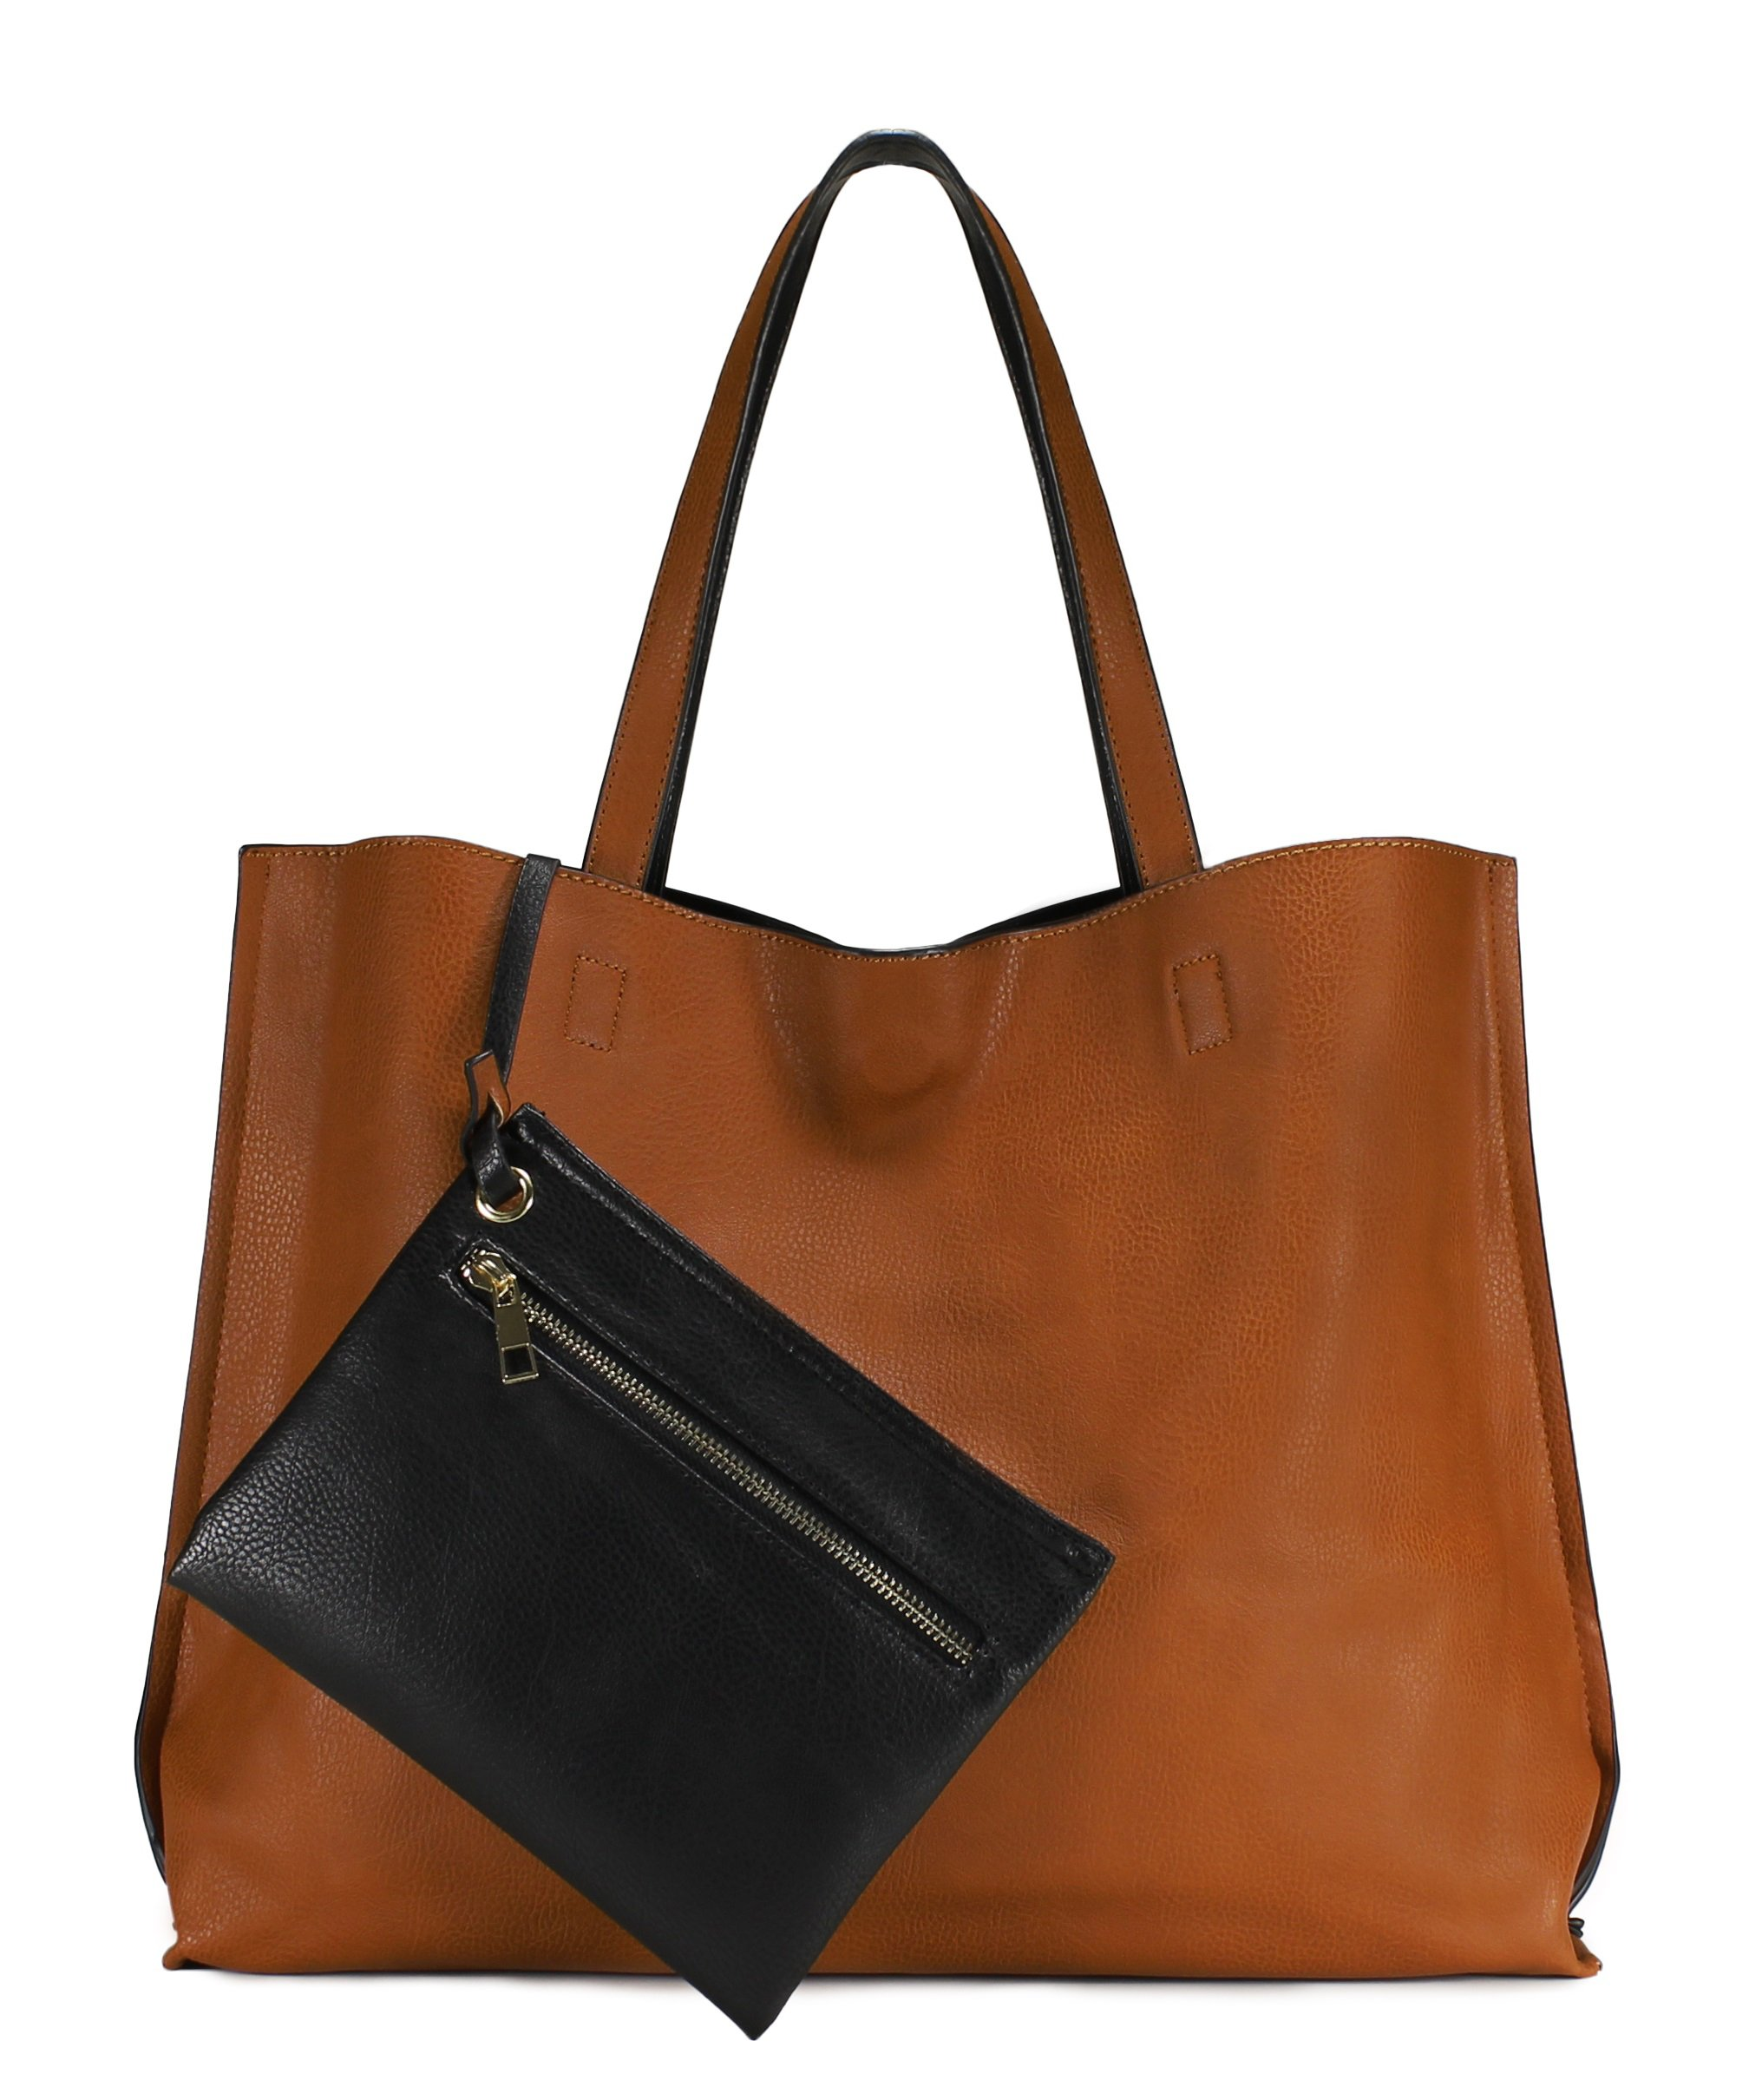 Scarleton Stylish Reversible Tote Handbag for Women, Vegan Leather Shoulder Bag, Hobo bag, Satchel Purse, Camel/Black, H18422501 by Scarleton